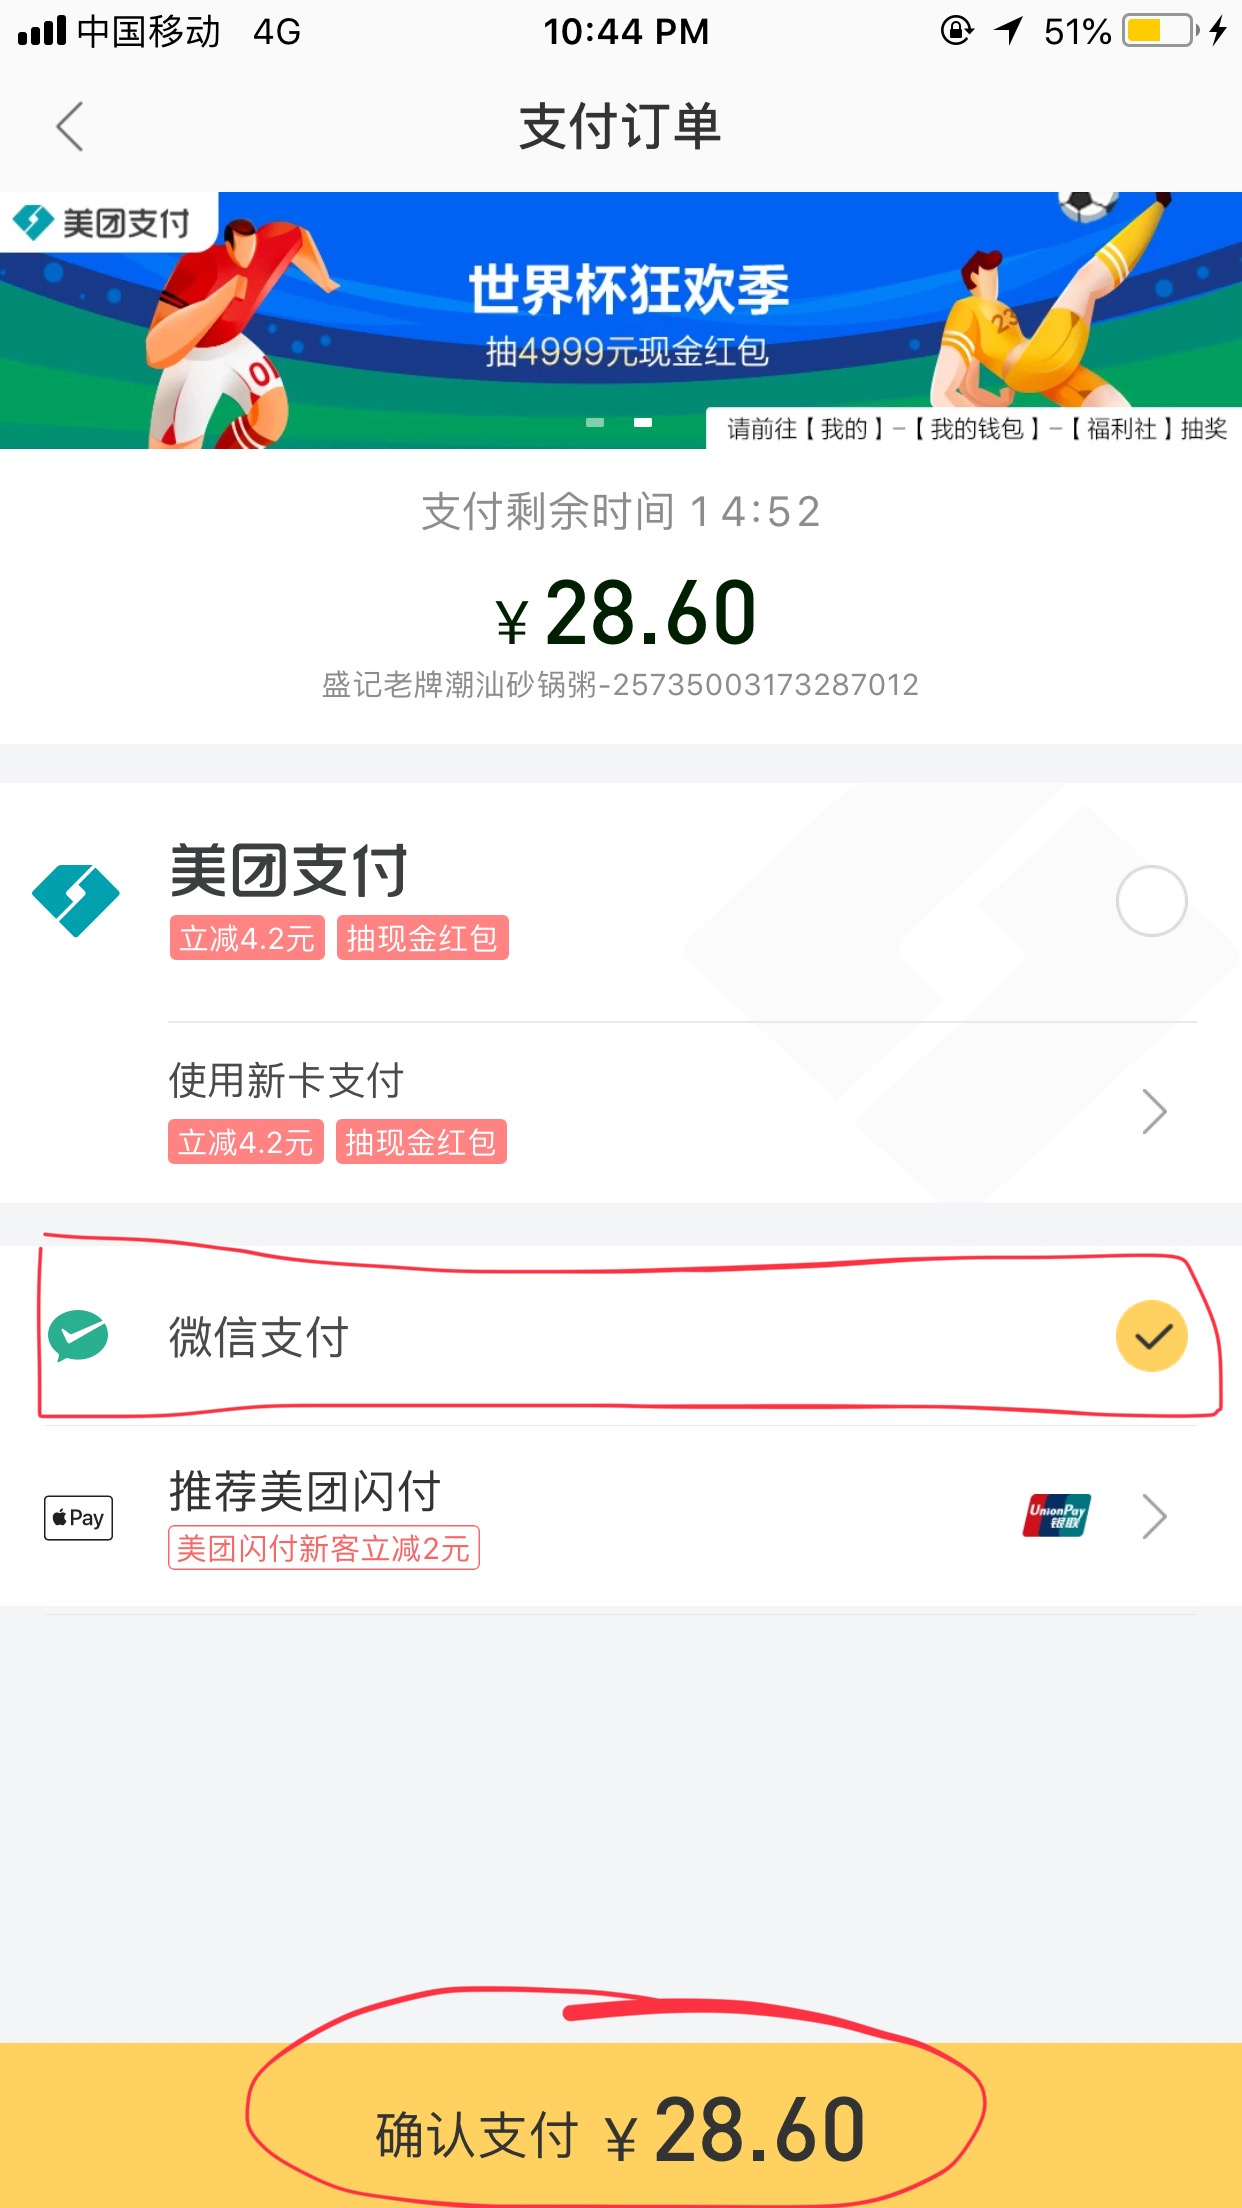 How to use Meituan Waimai to Order Food - Country and a Half